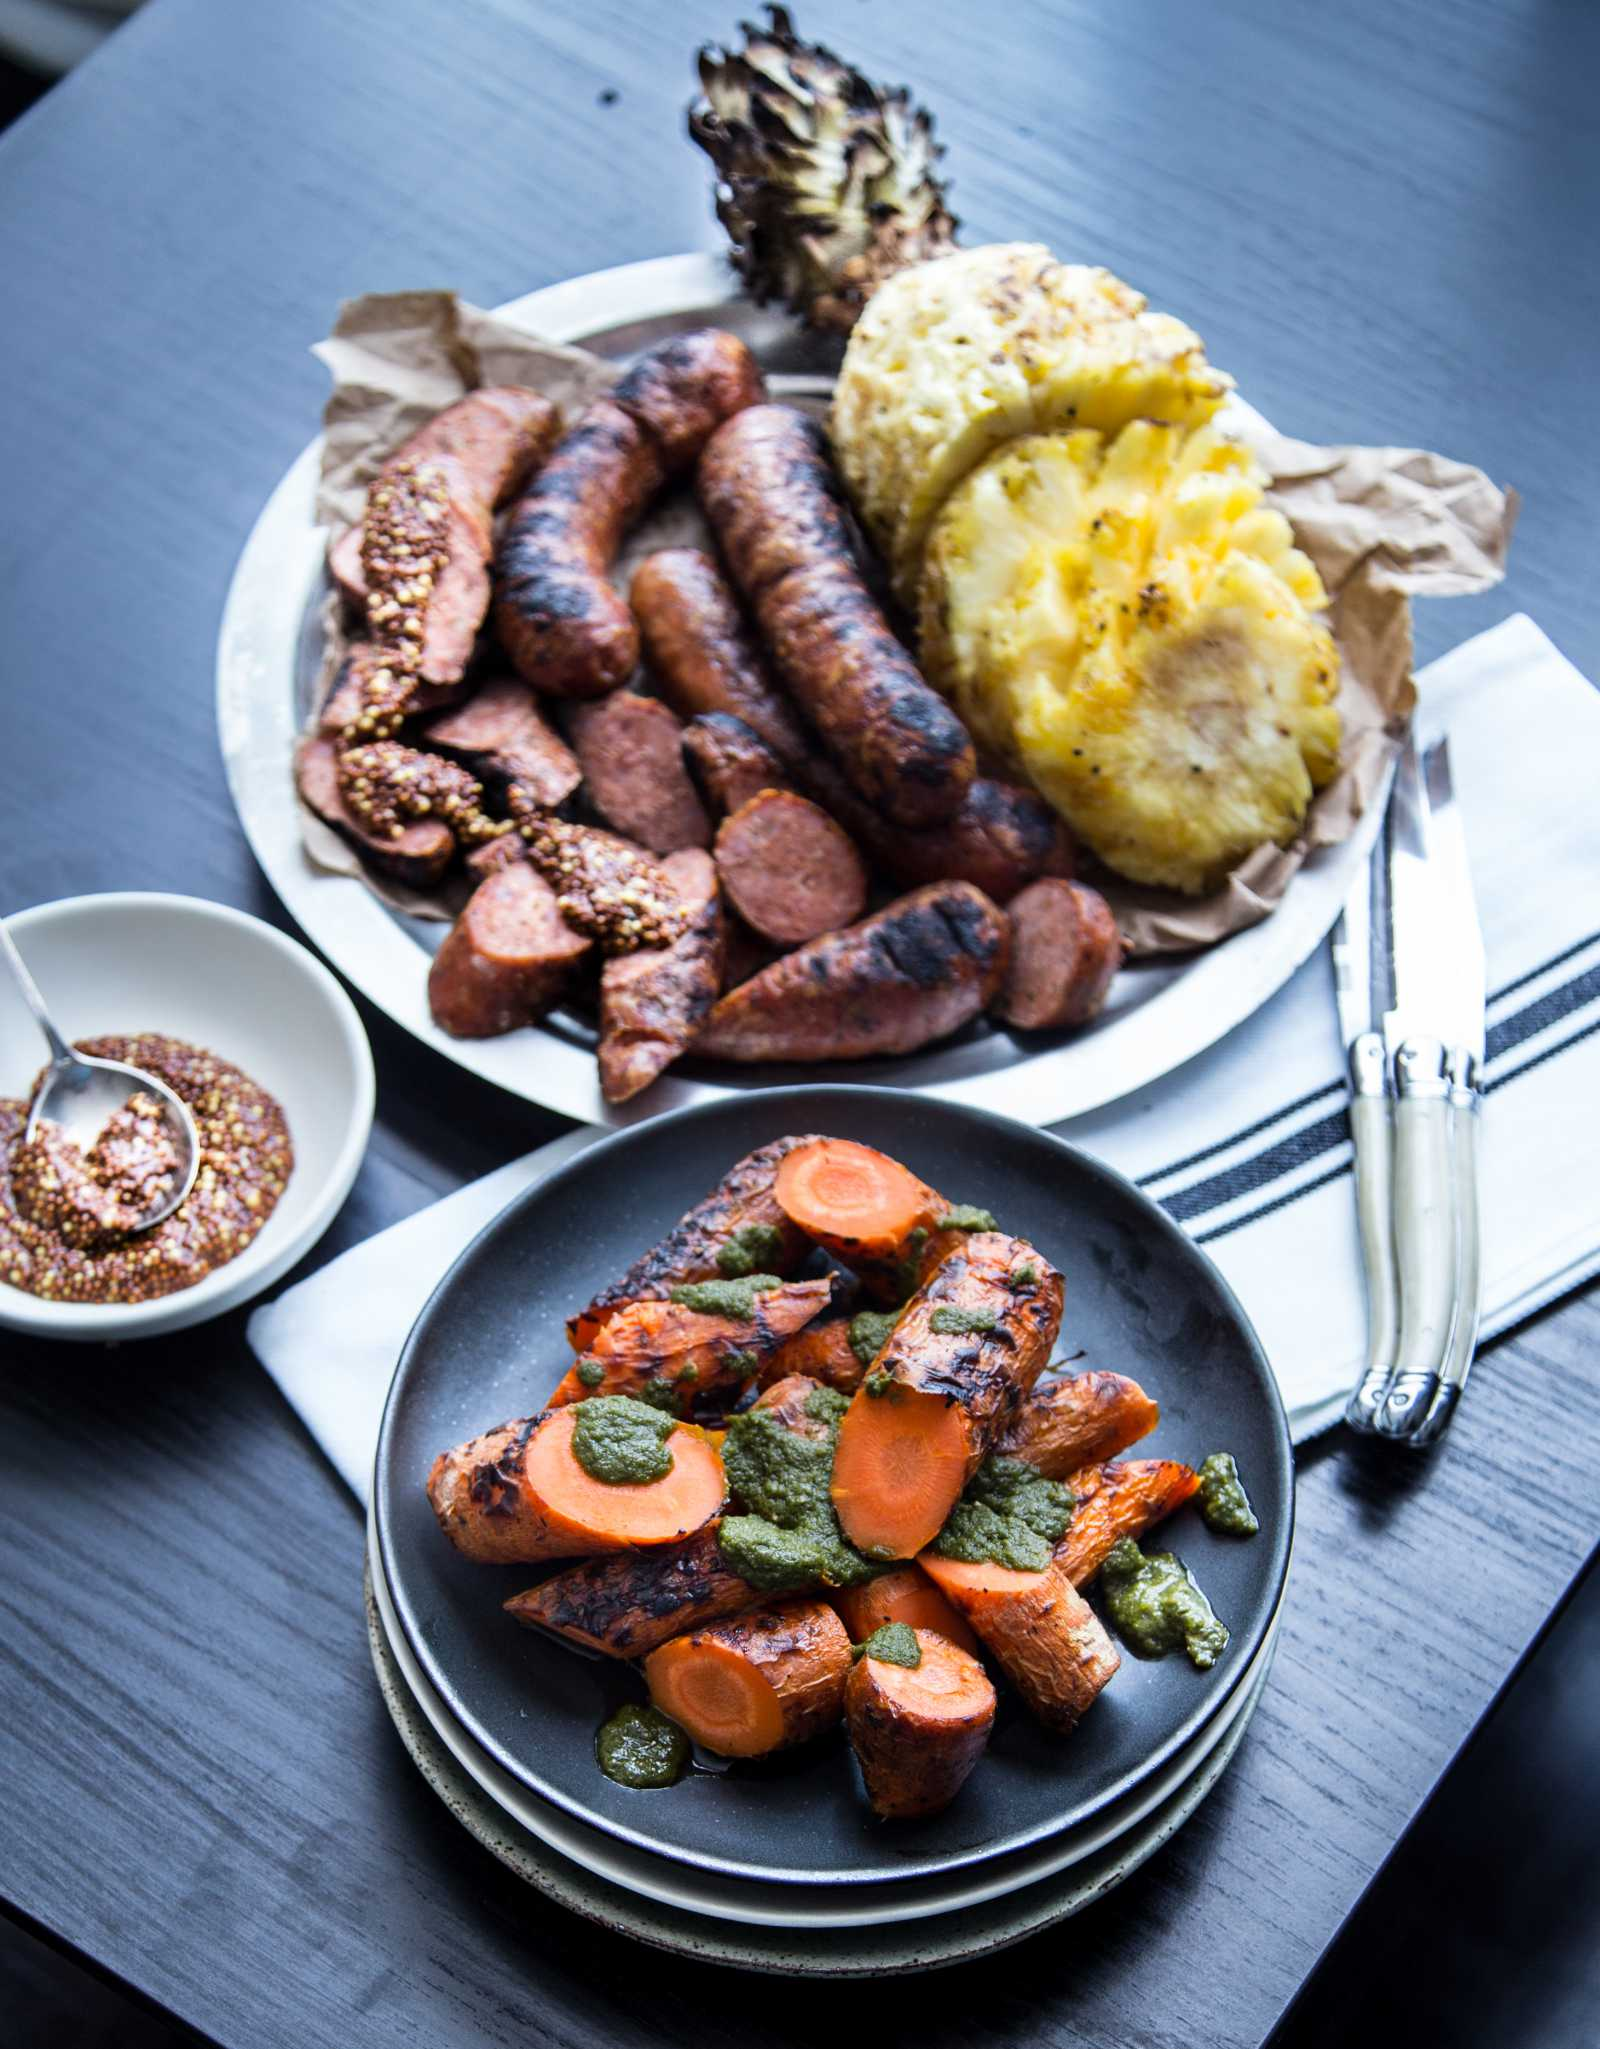 Grilled Carrot, Pineapple & Sausage w/ Chimichurri